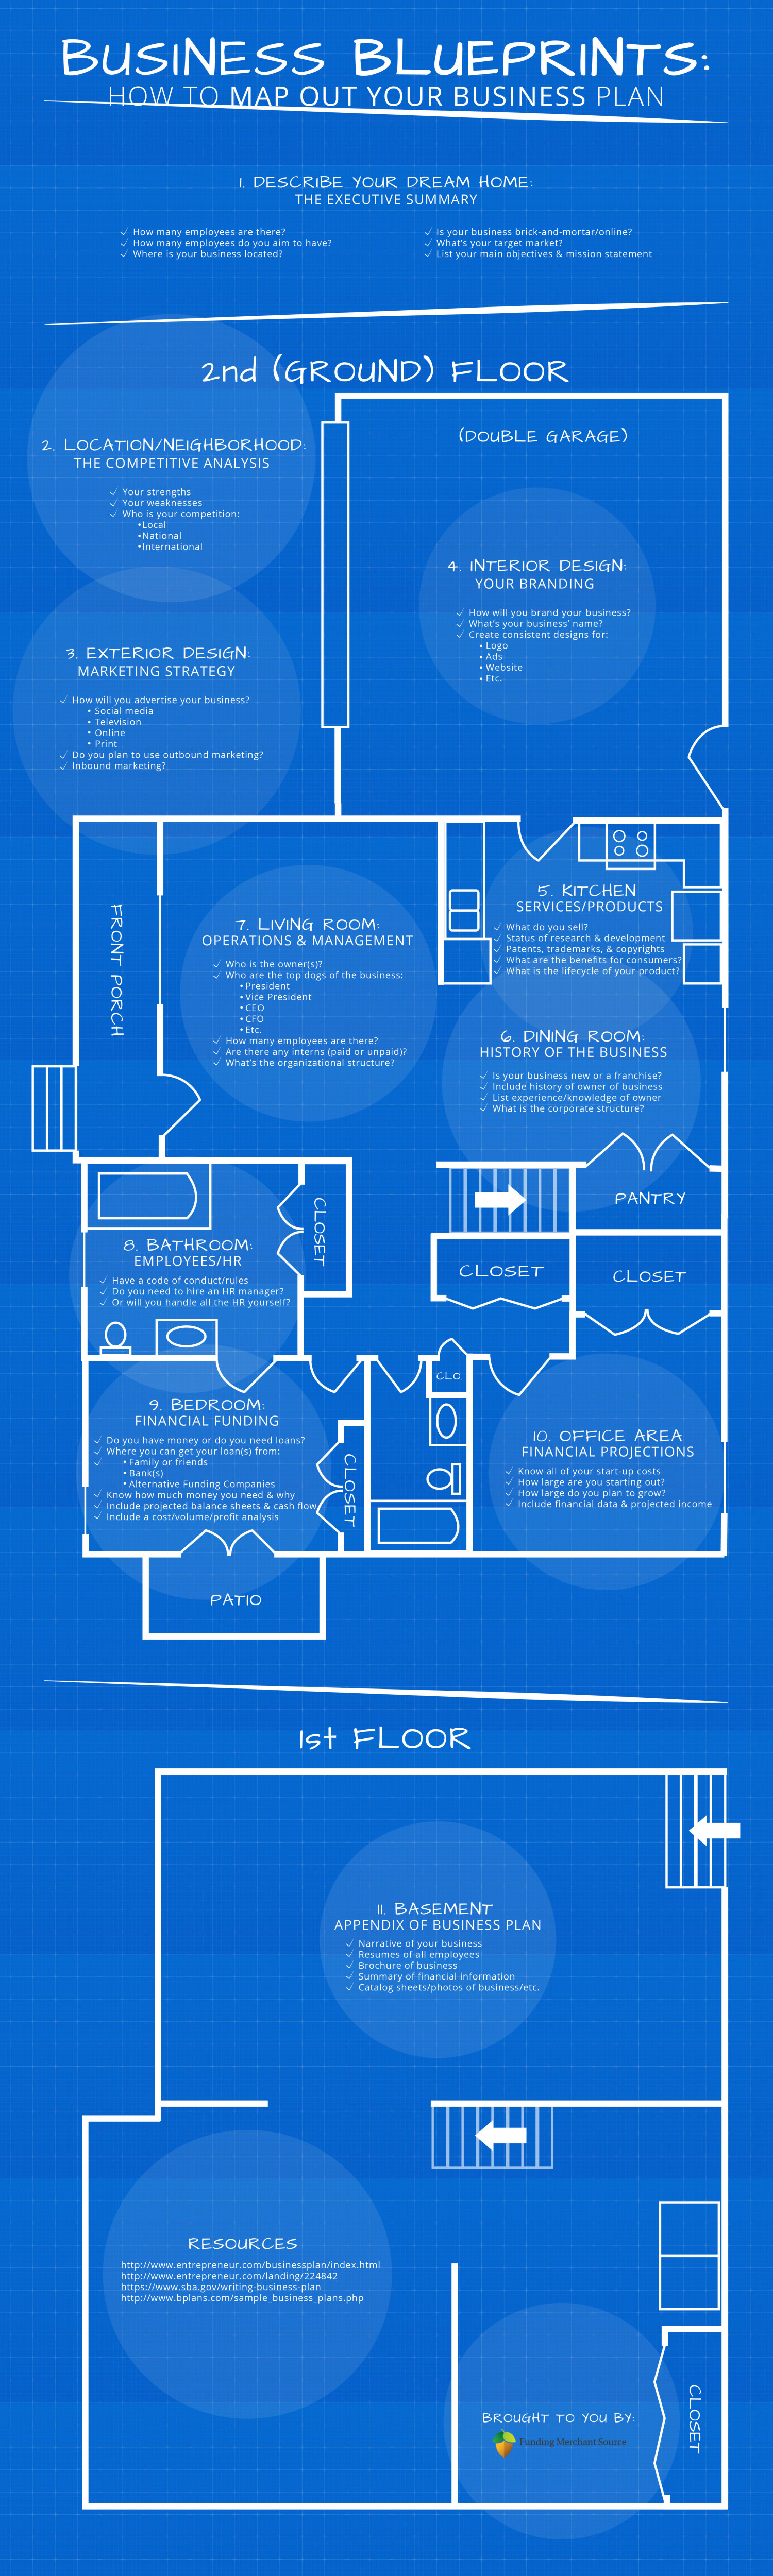 Business Blueprints: How to Map Out Your Business Plan  Infographic